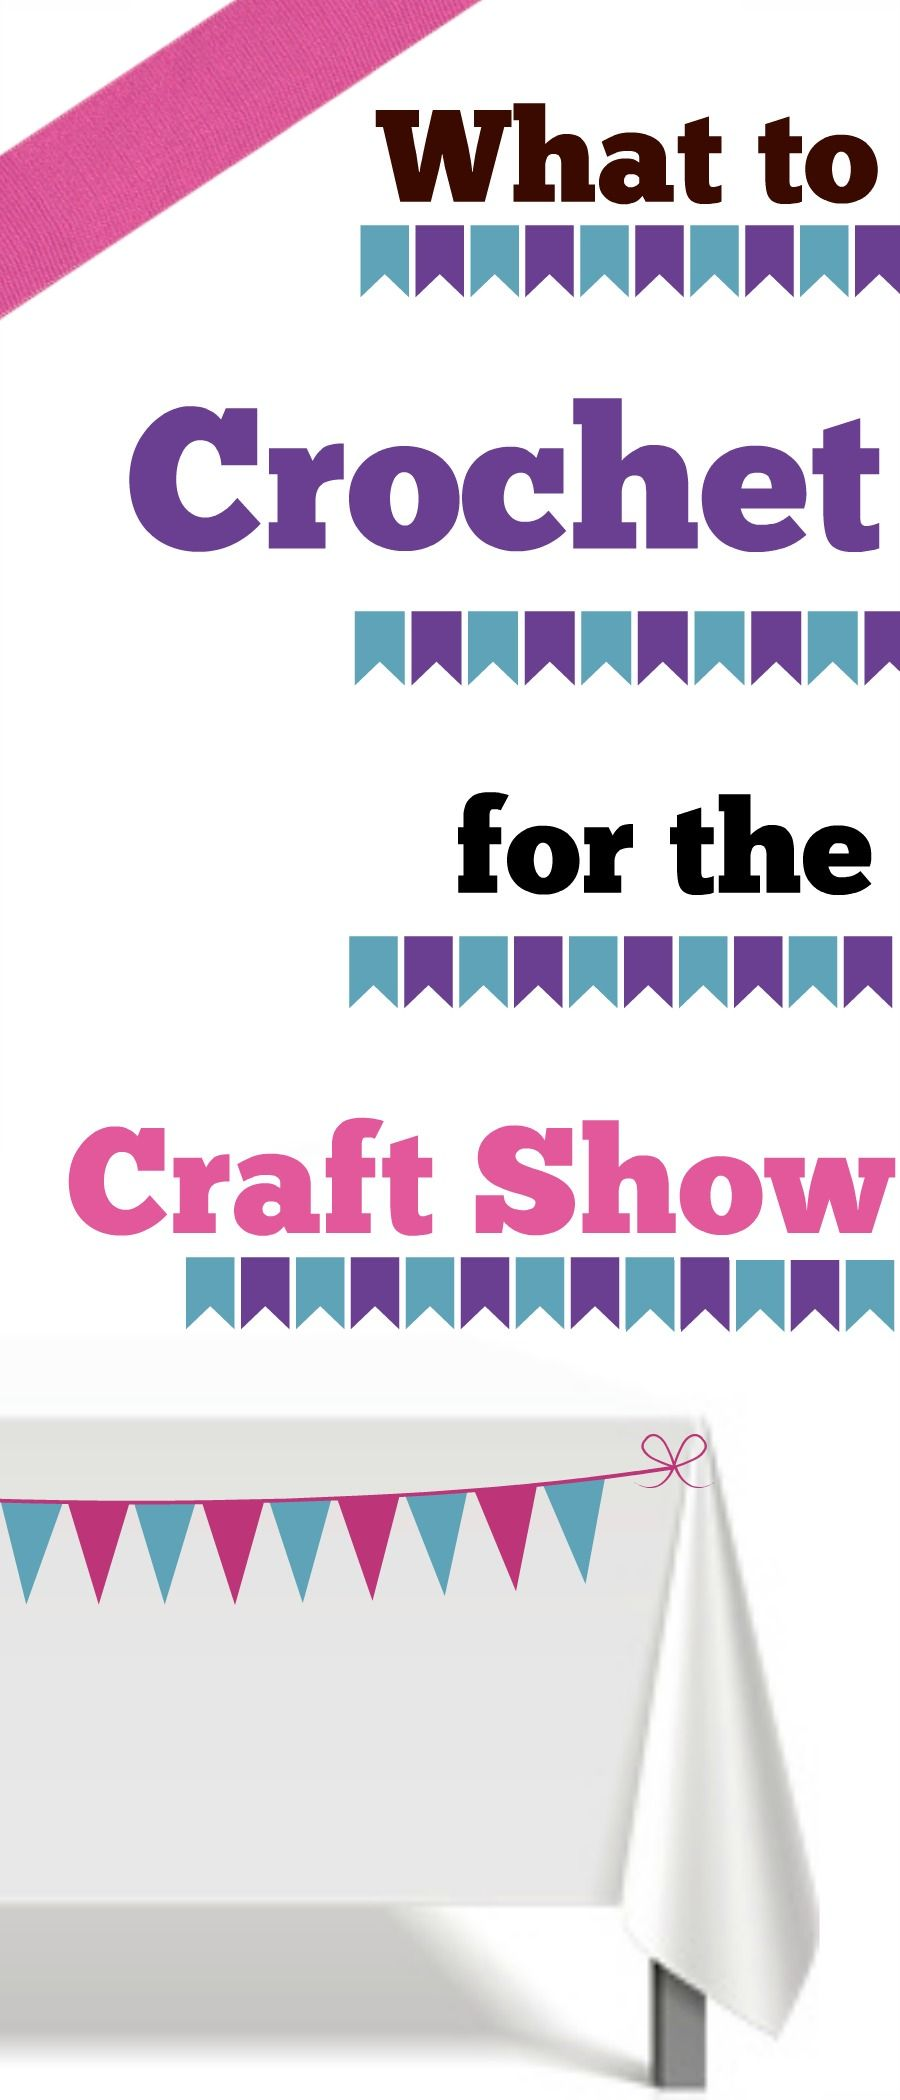 Crochet Patterns that sell well for craft shows! | Crochet ...